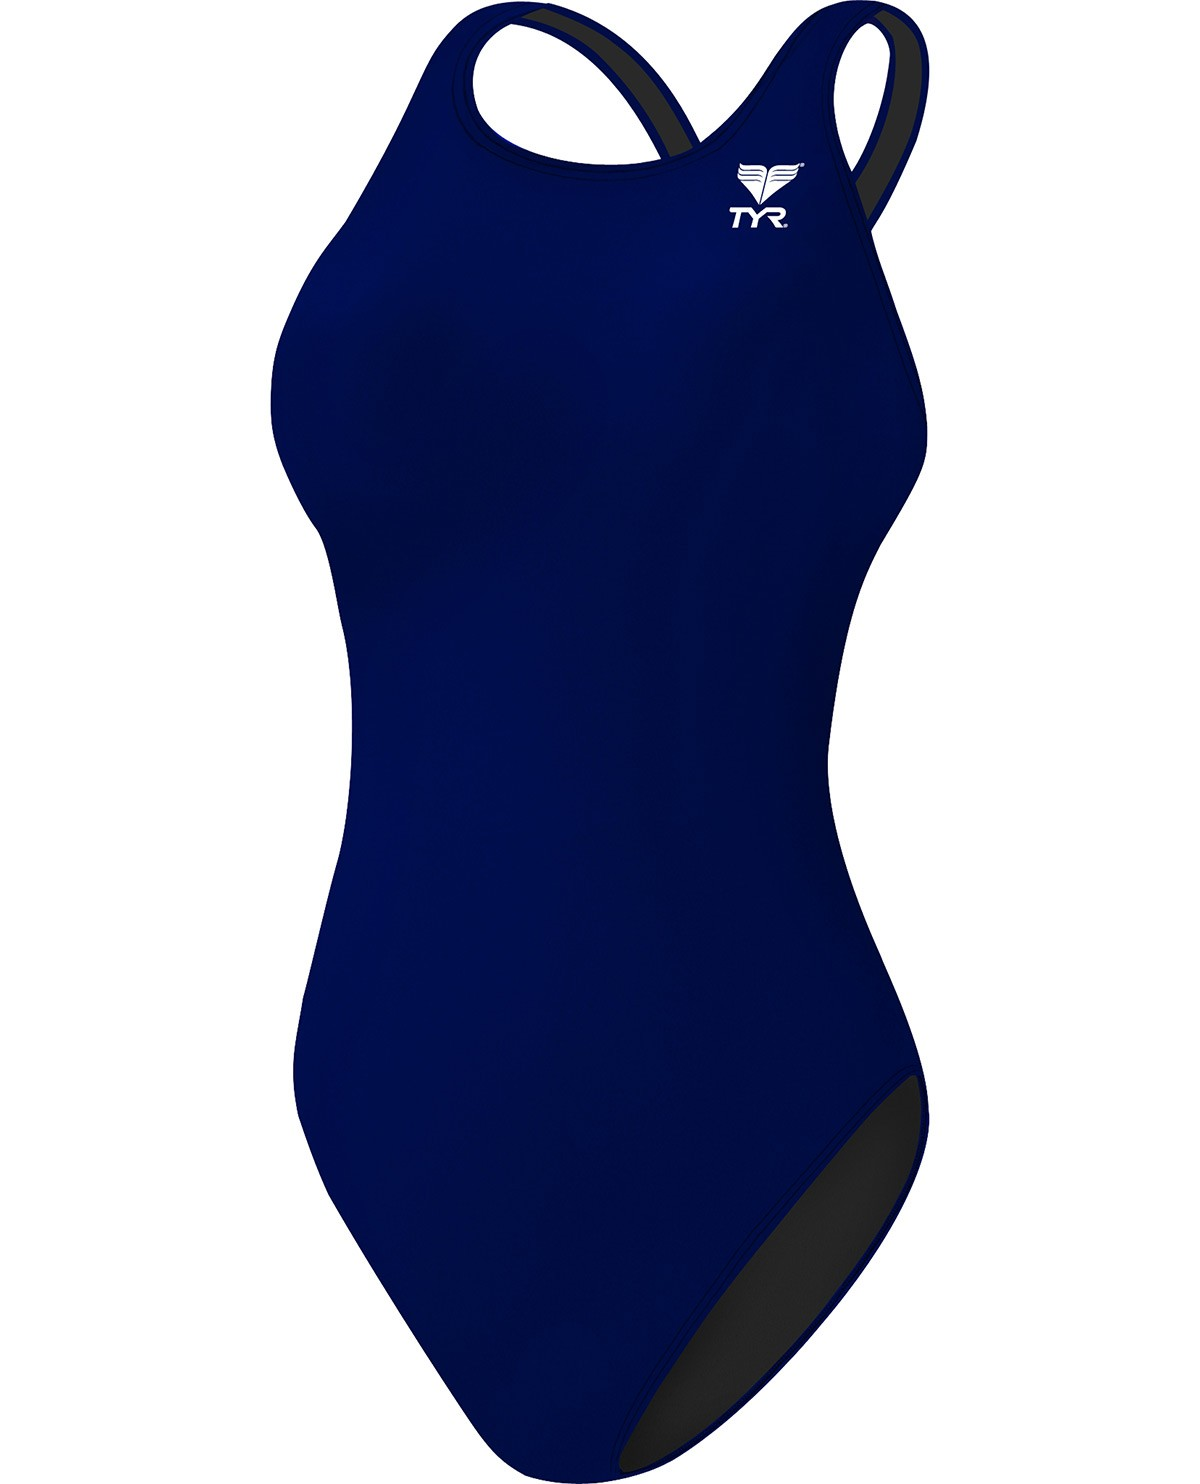 Swimsuit Clipart 6 Clipart Station